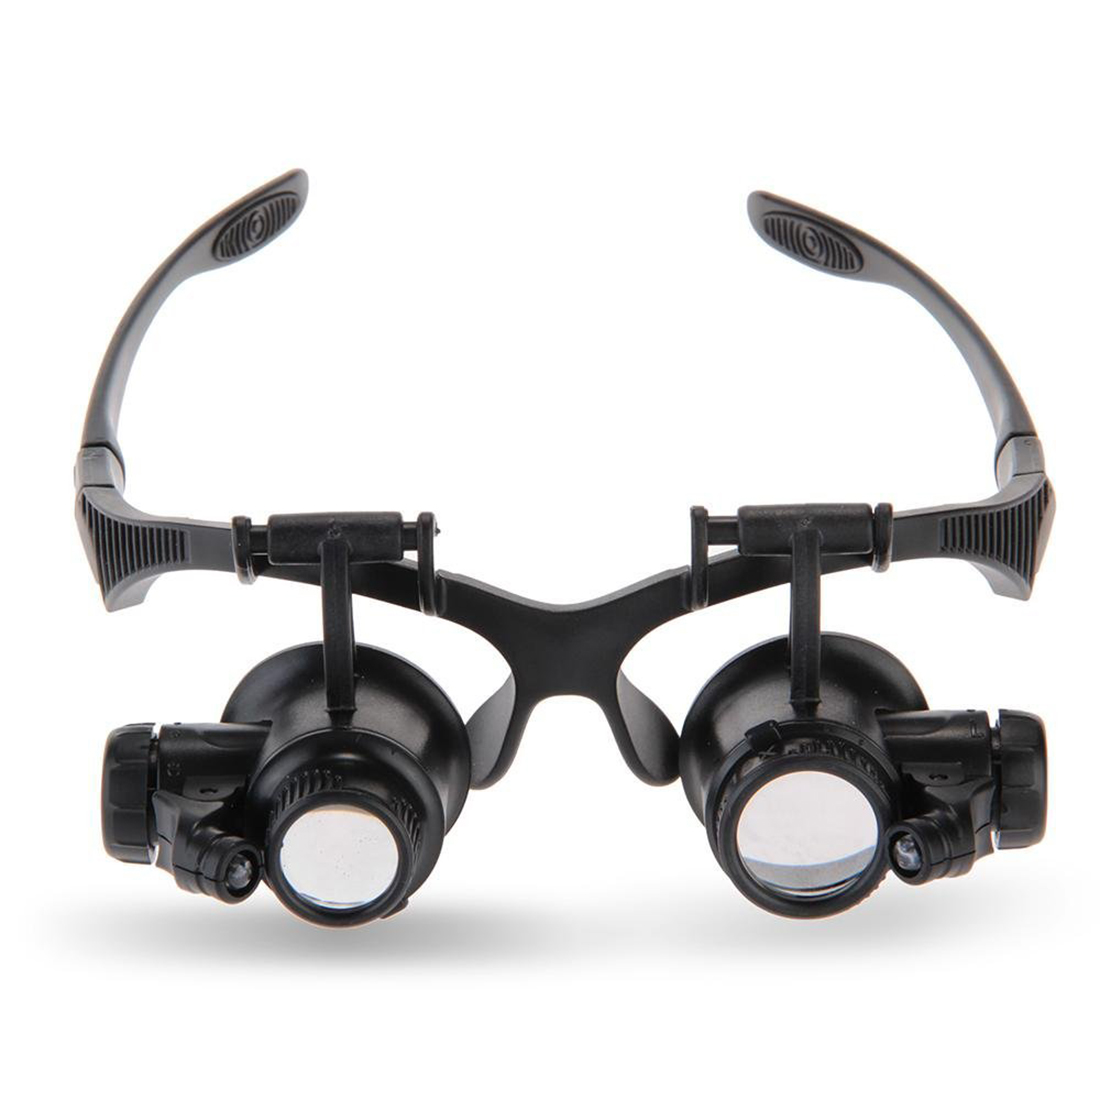 LED 10x 15x 20x 25x Eye Magnifying Glasses Magnifying Loupe Magnifier For Jeweler Watchmaker Black